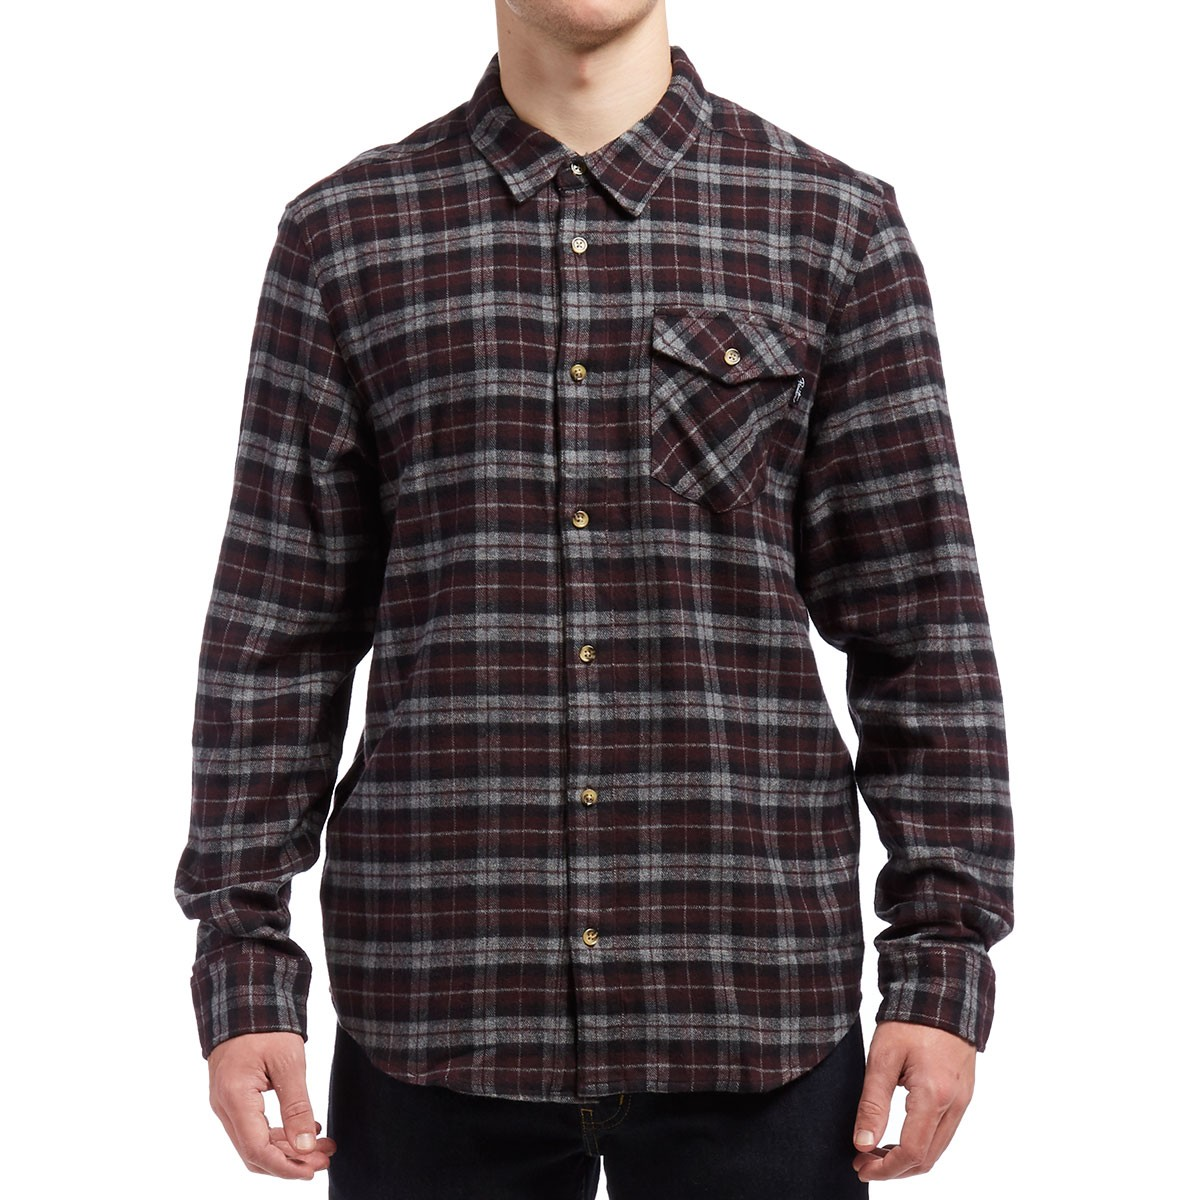 Primitive philly heather flannel shirt burgundy plaid for What are flannel shirts made of